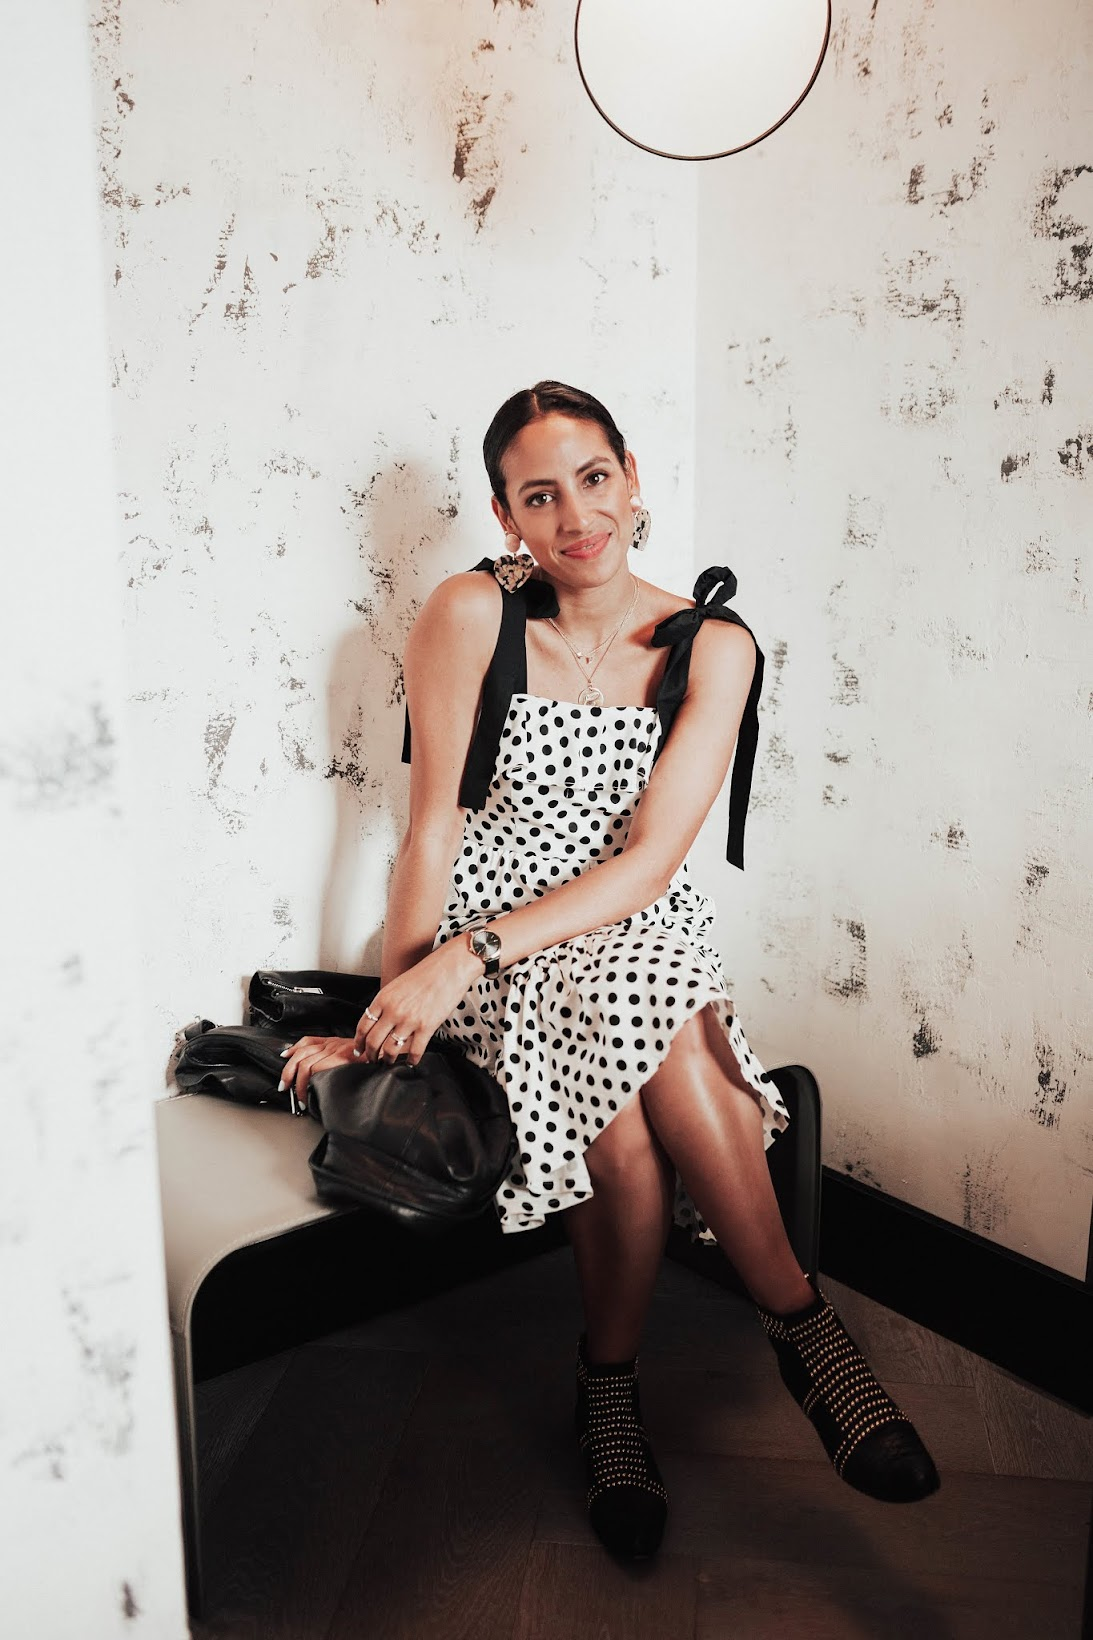 polka dot bow dress, Riad label dress, new dress line, Coach Moto Jacket, Anine Bing Booties, BaubleBar Gigi Resin Heart earrings, Hotel G penthouse suite, Fall style, transitional fall style